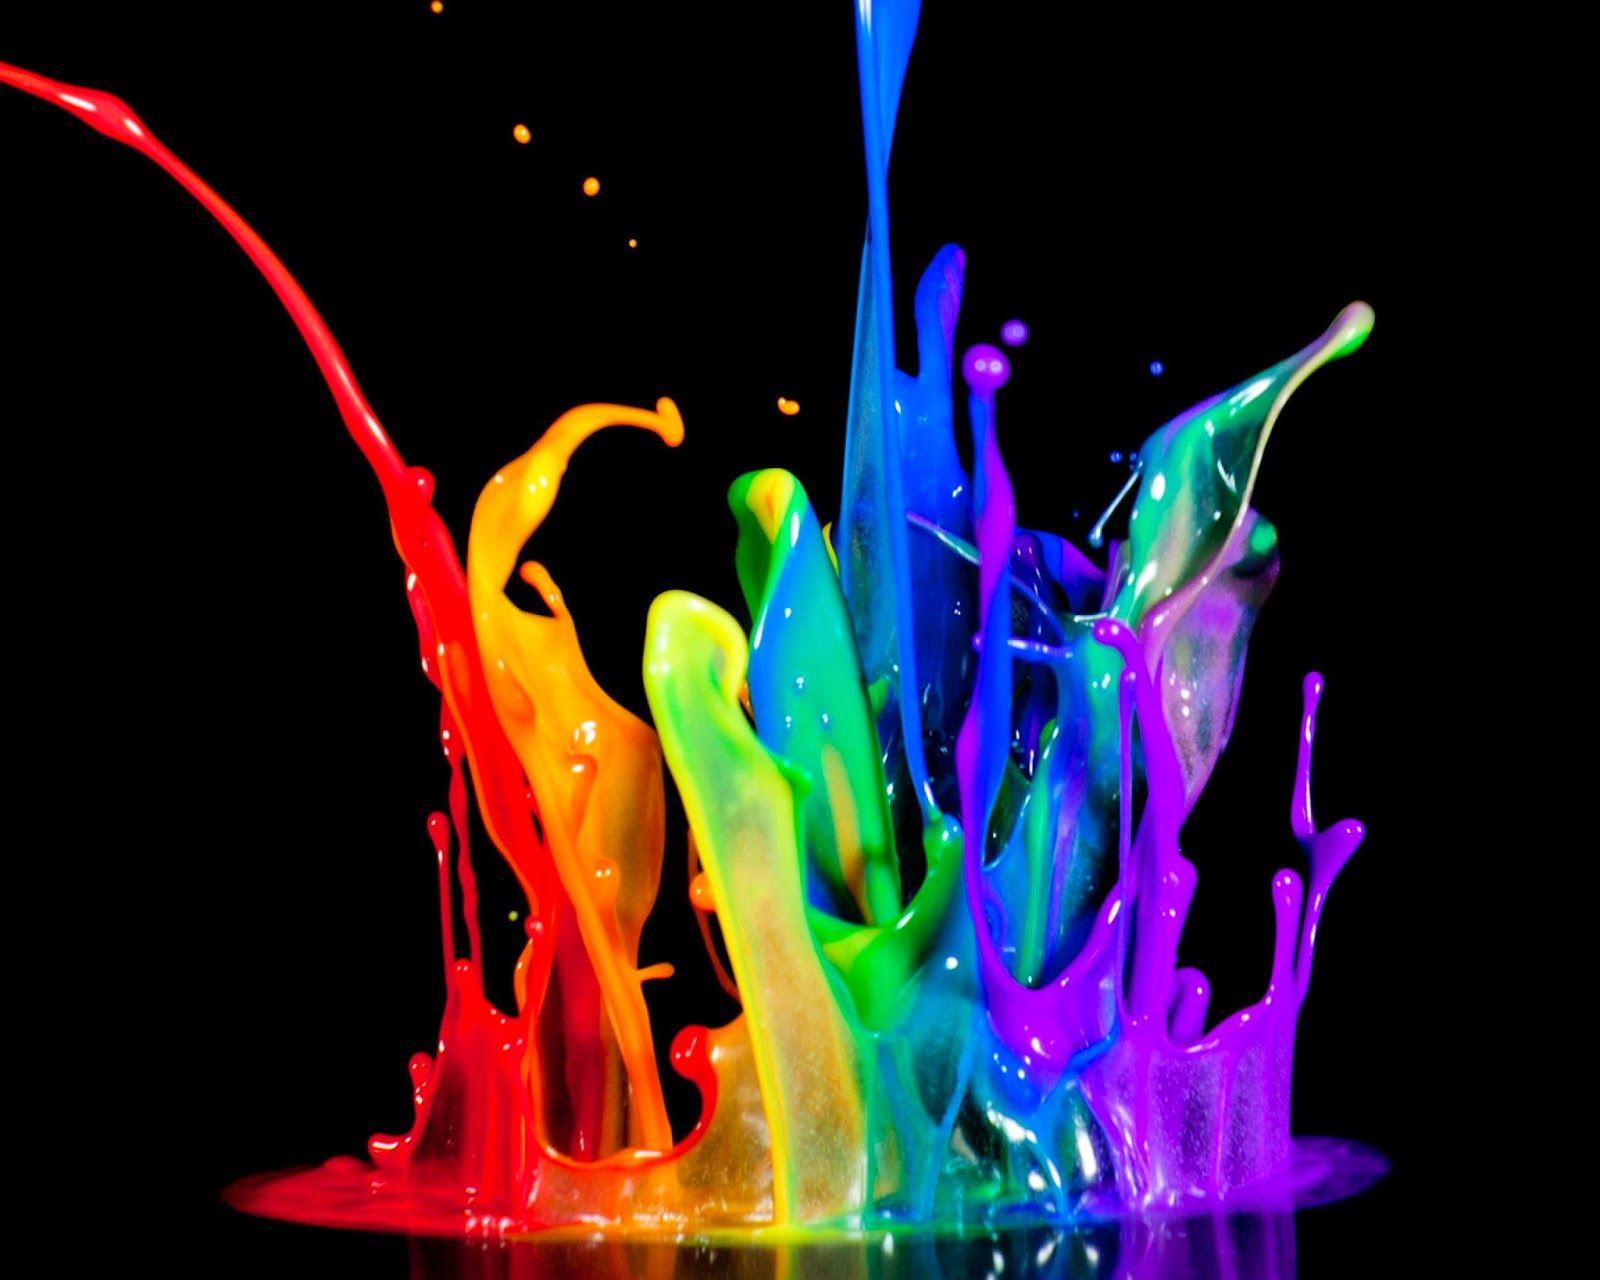 Download Holi Pictures Download Holi Wallpapers Pictures Download Images Of Holi Download Images Of Qu Colorful Wallpaper Rainbow Painting Rainbow Wallpaper